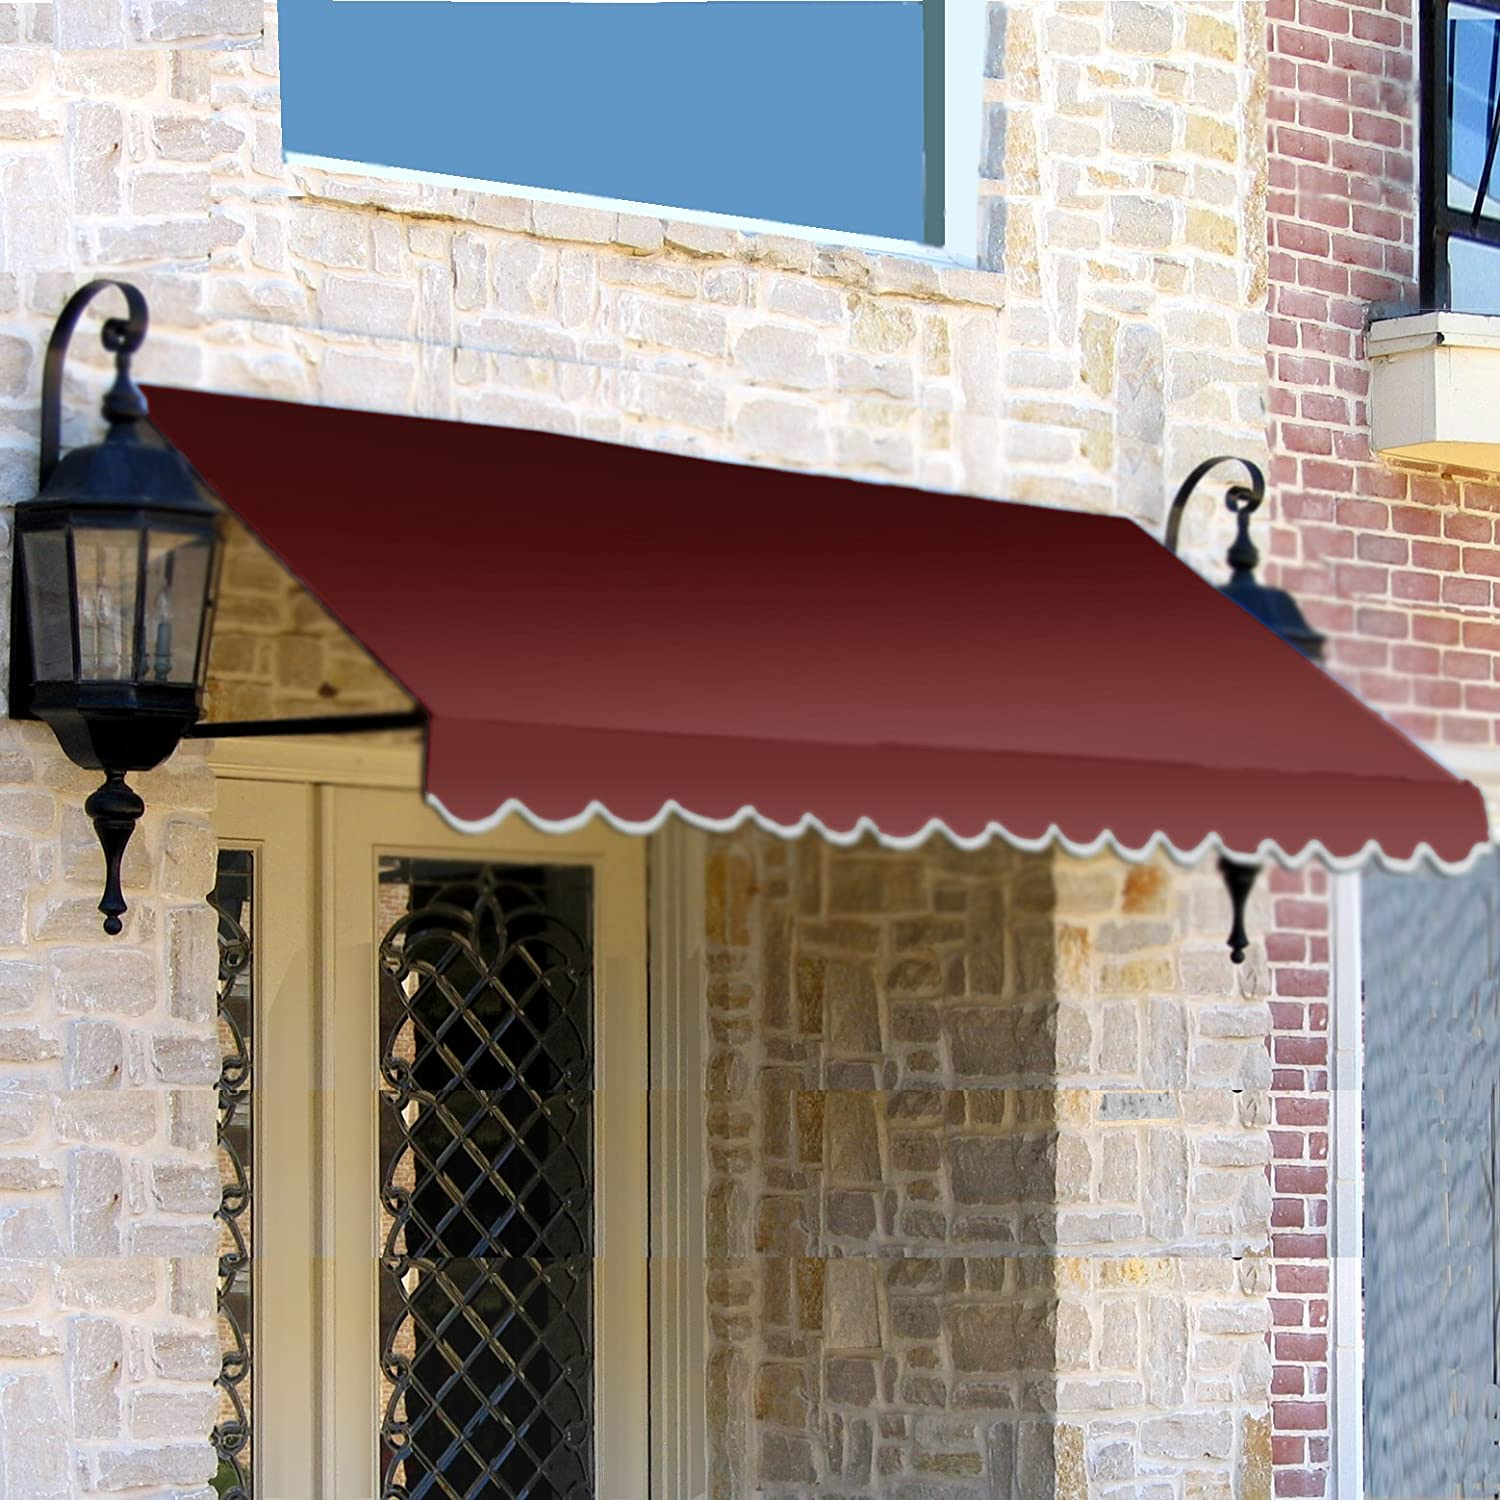 Amazon.com : Awntech 3 Feet Dallas Retro Awning For Low Eaves, 18 By  36 Inch, Black : Garden U0026 Outdoor